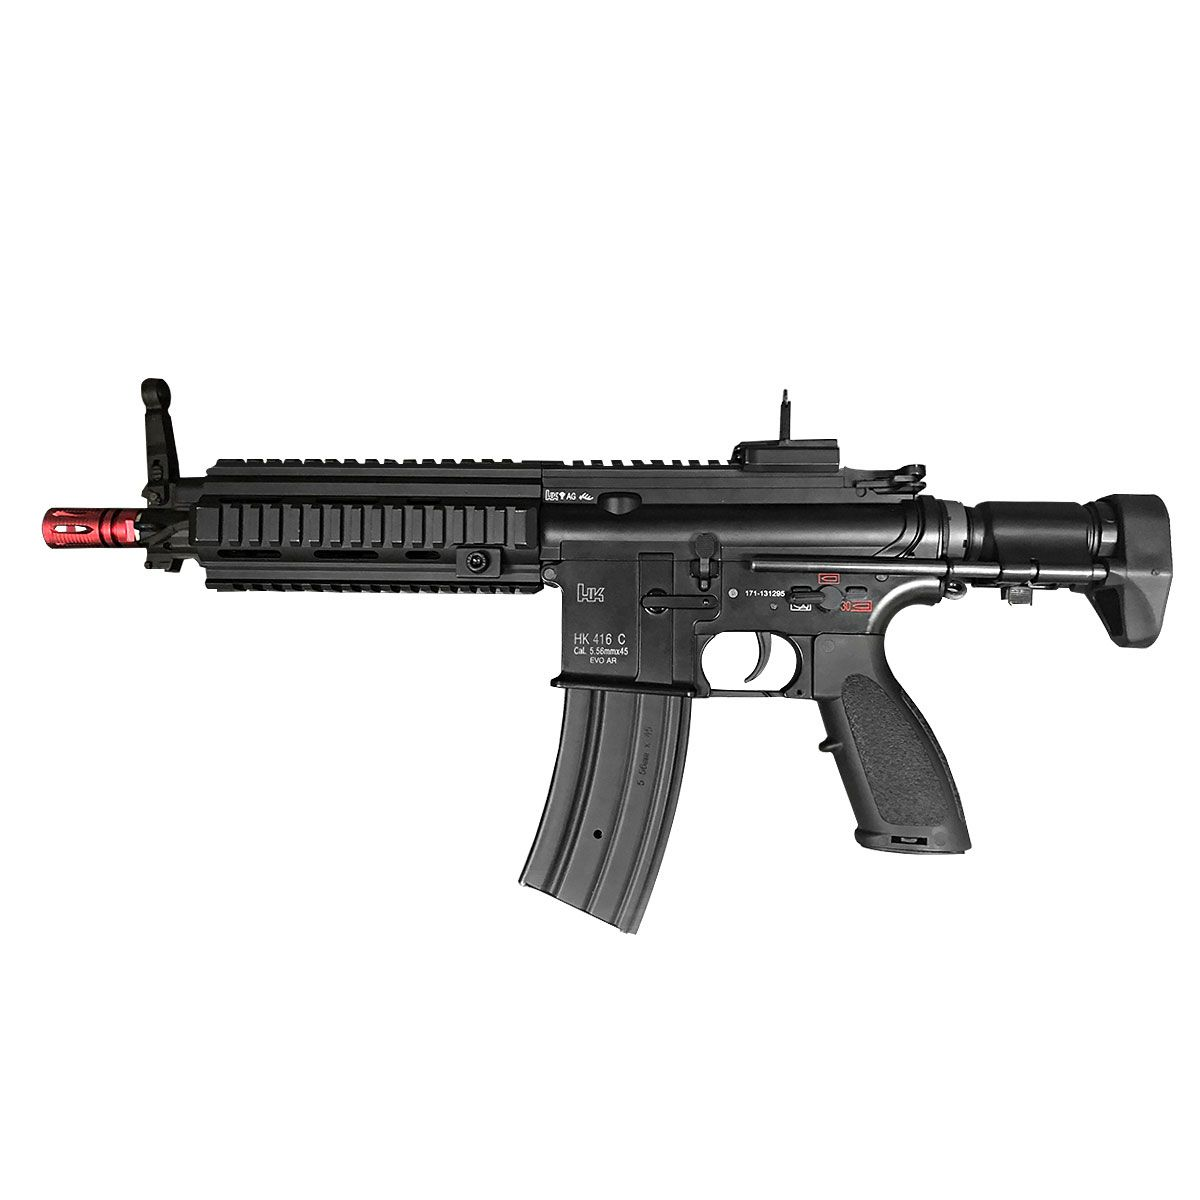 Fuzil de Airsoft Evo HK 416 C 101 Full Metal Elétrico 6mm